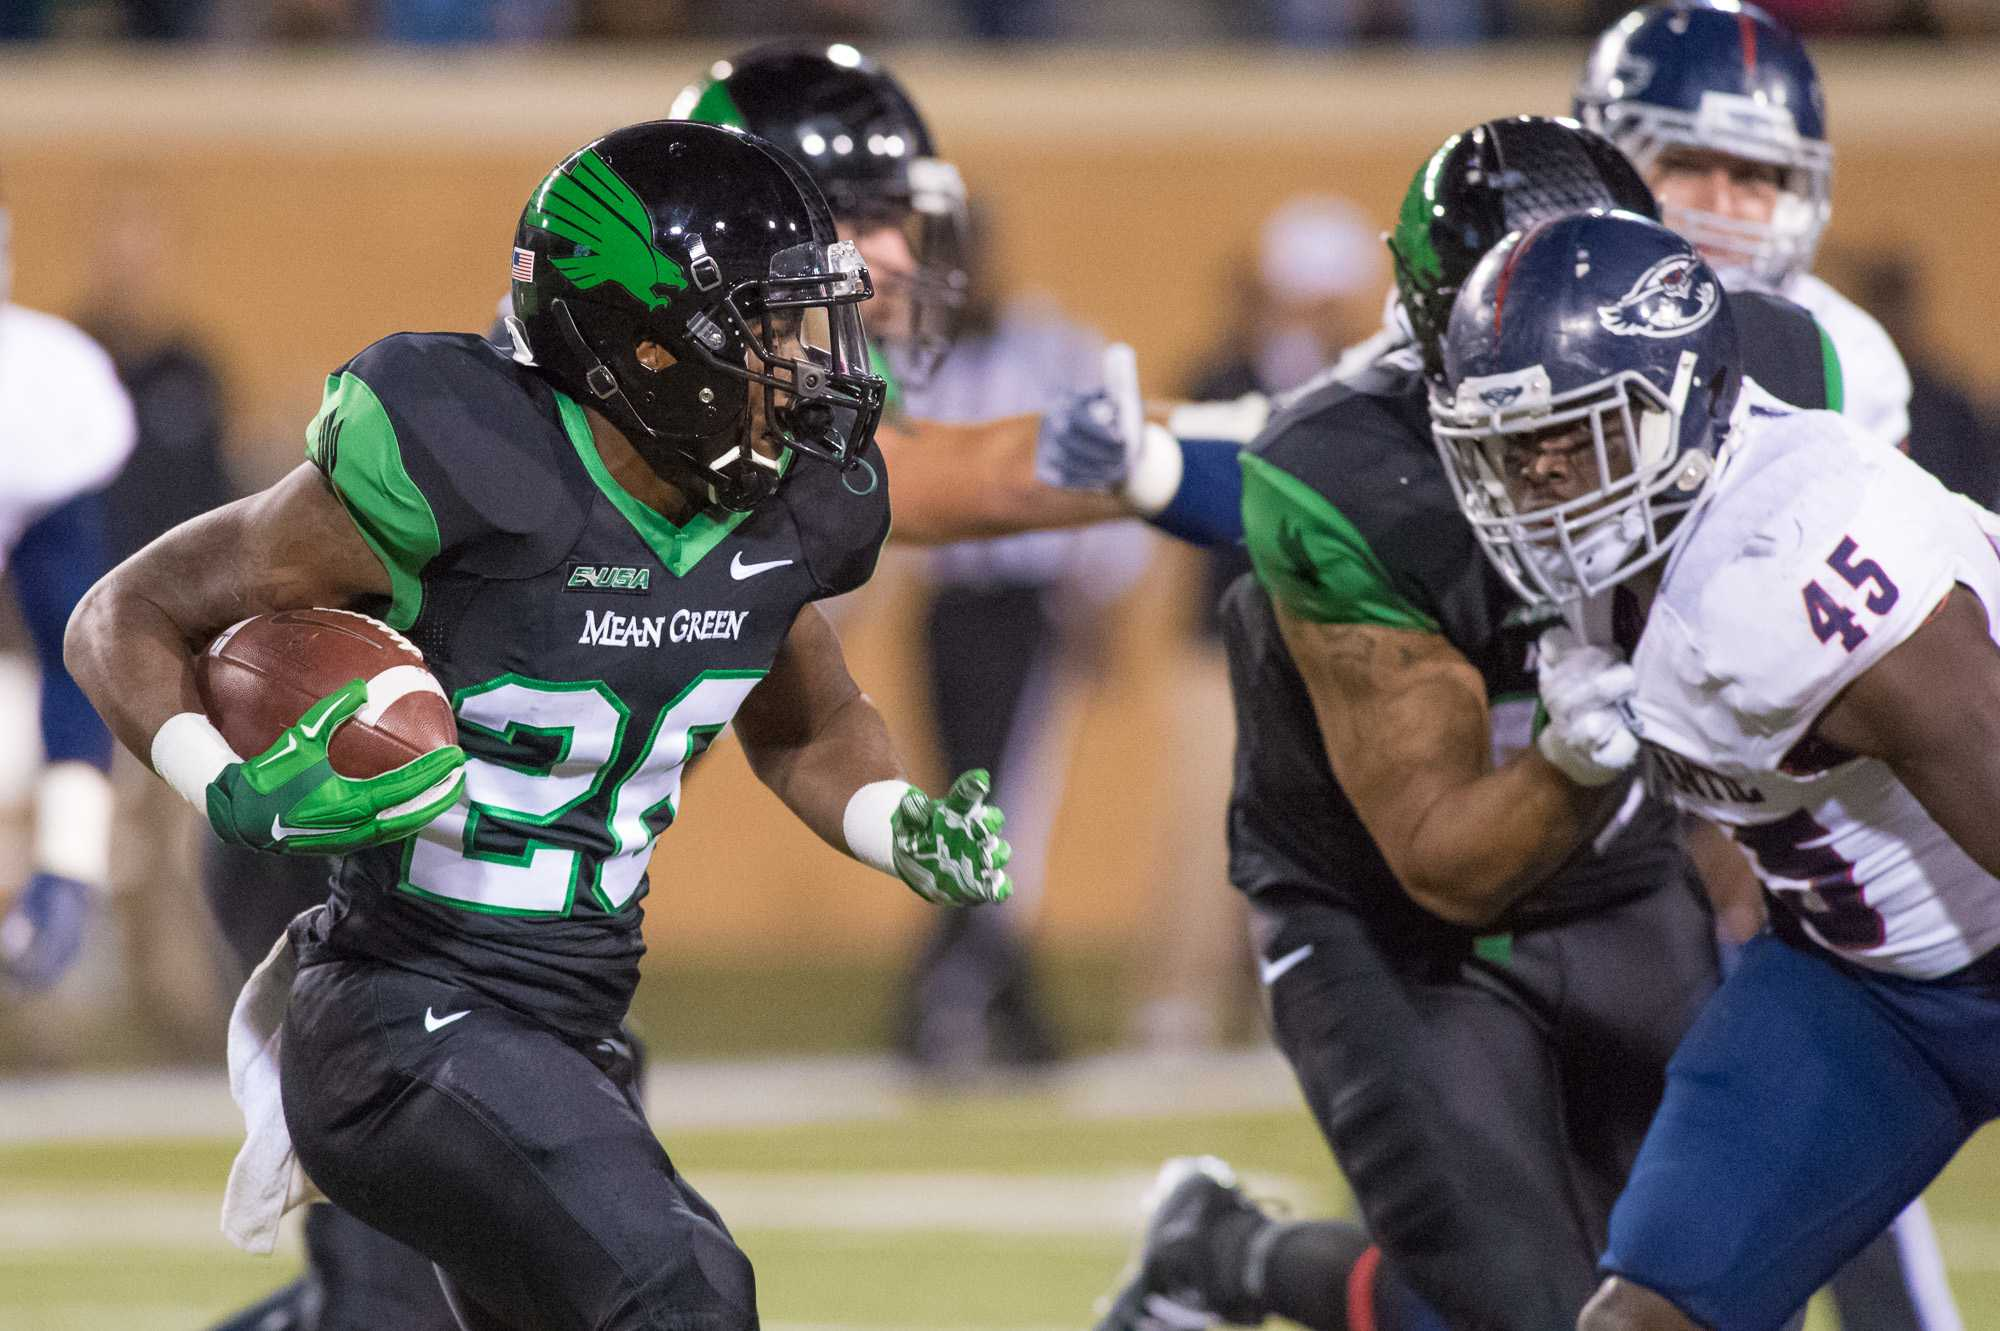 [ Max Jackson | Photo Editor ] North Texas running back Jeffrey Wilson picks up a first down with a five yard run in the first quarter. FAU linebacker Andrae Kirk is in pursuit.